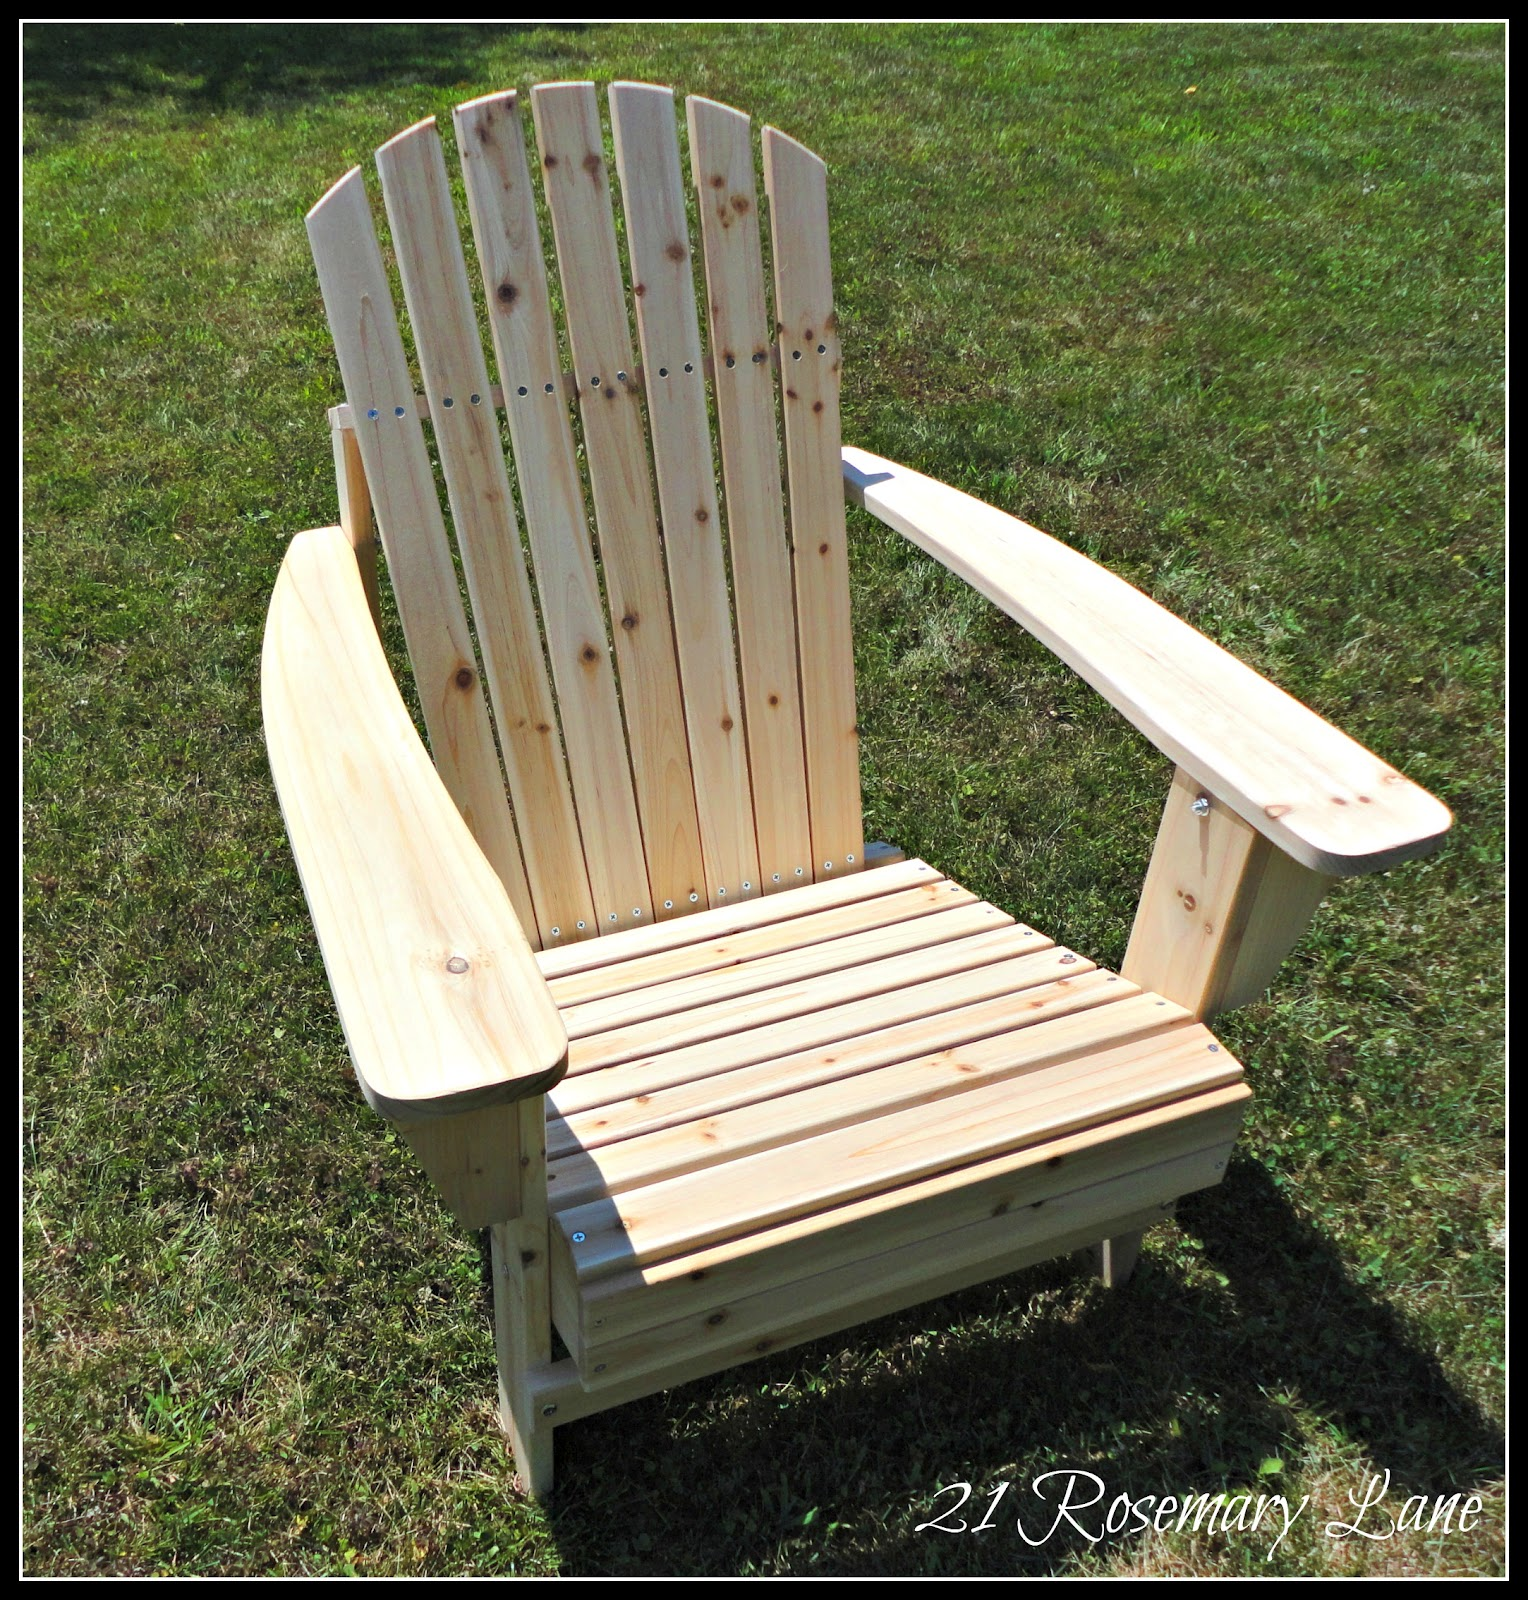 Adirondack chair painting - Not Bad I Thought Considering The Painted Adirondack Chairs Being Sold At The Pool Place Down The Road Were Going For 299 A Pop